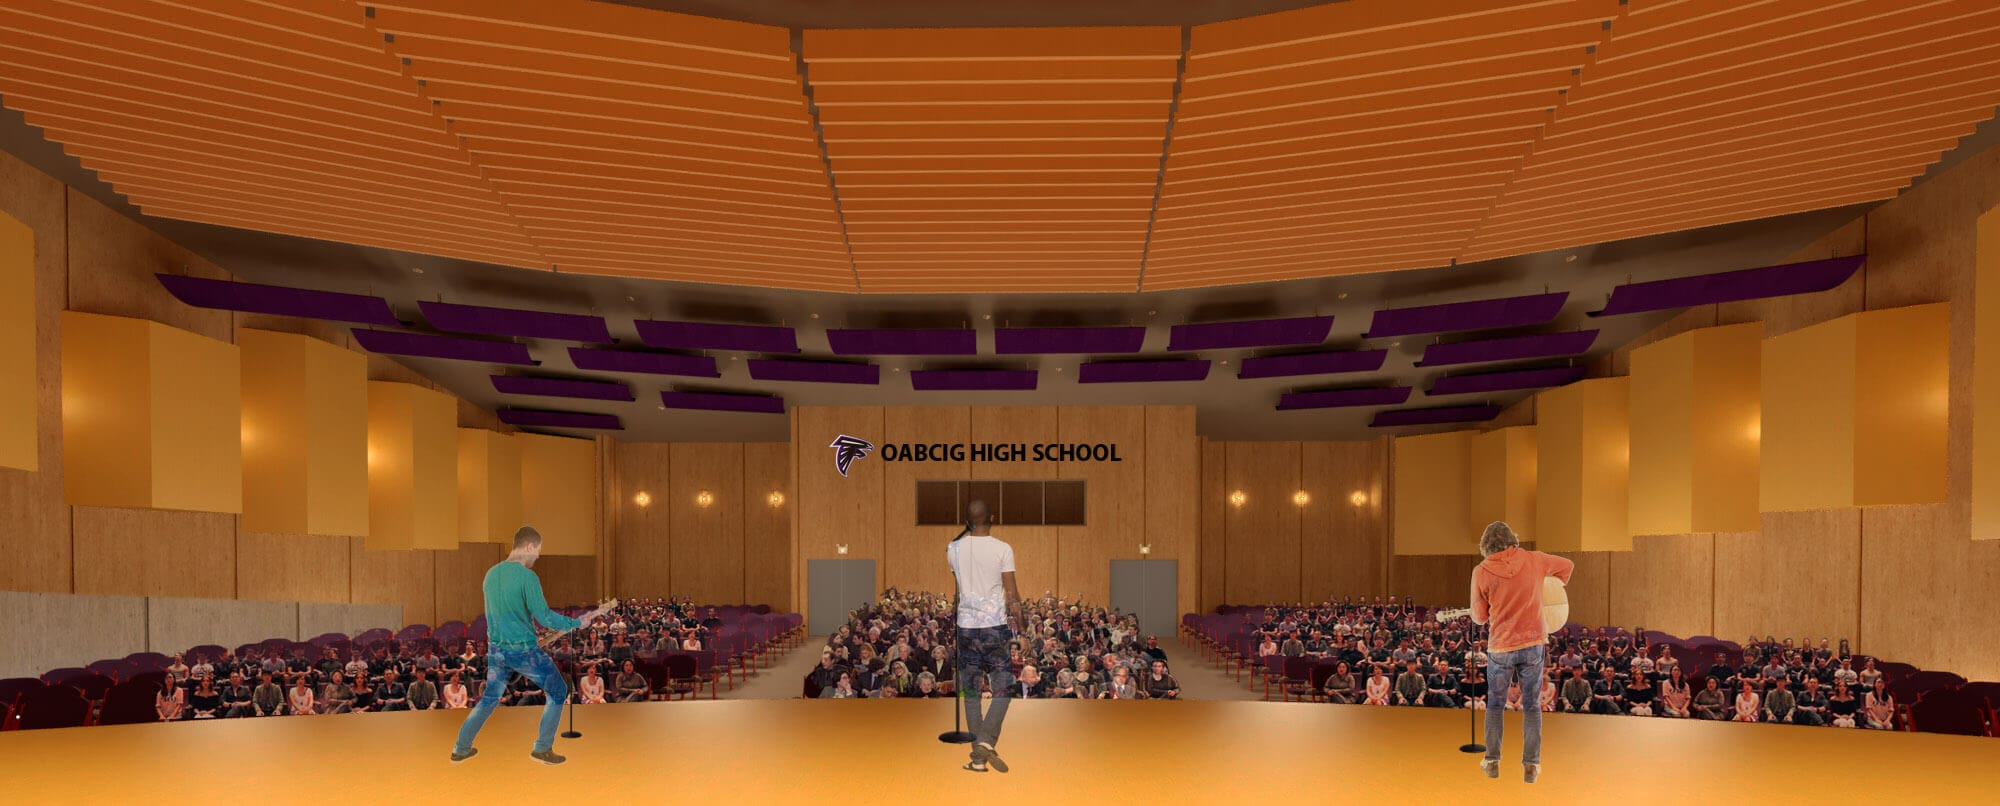 AUDITORIUM- VIEW FROM THE STAGE